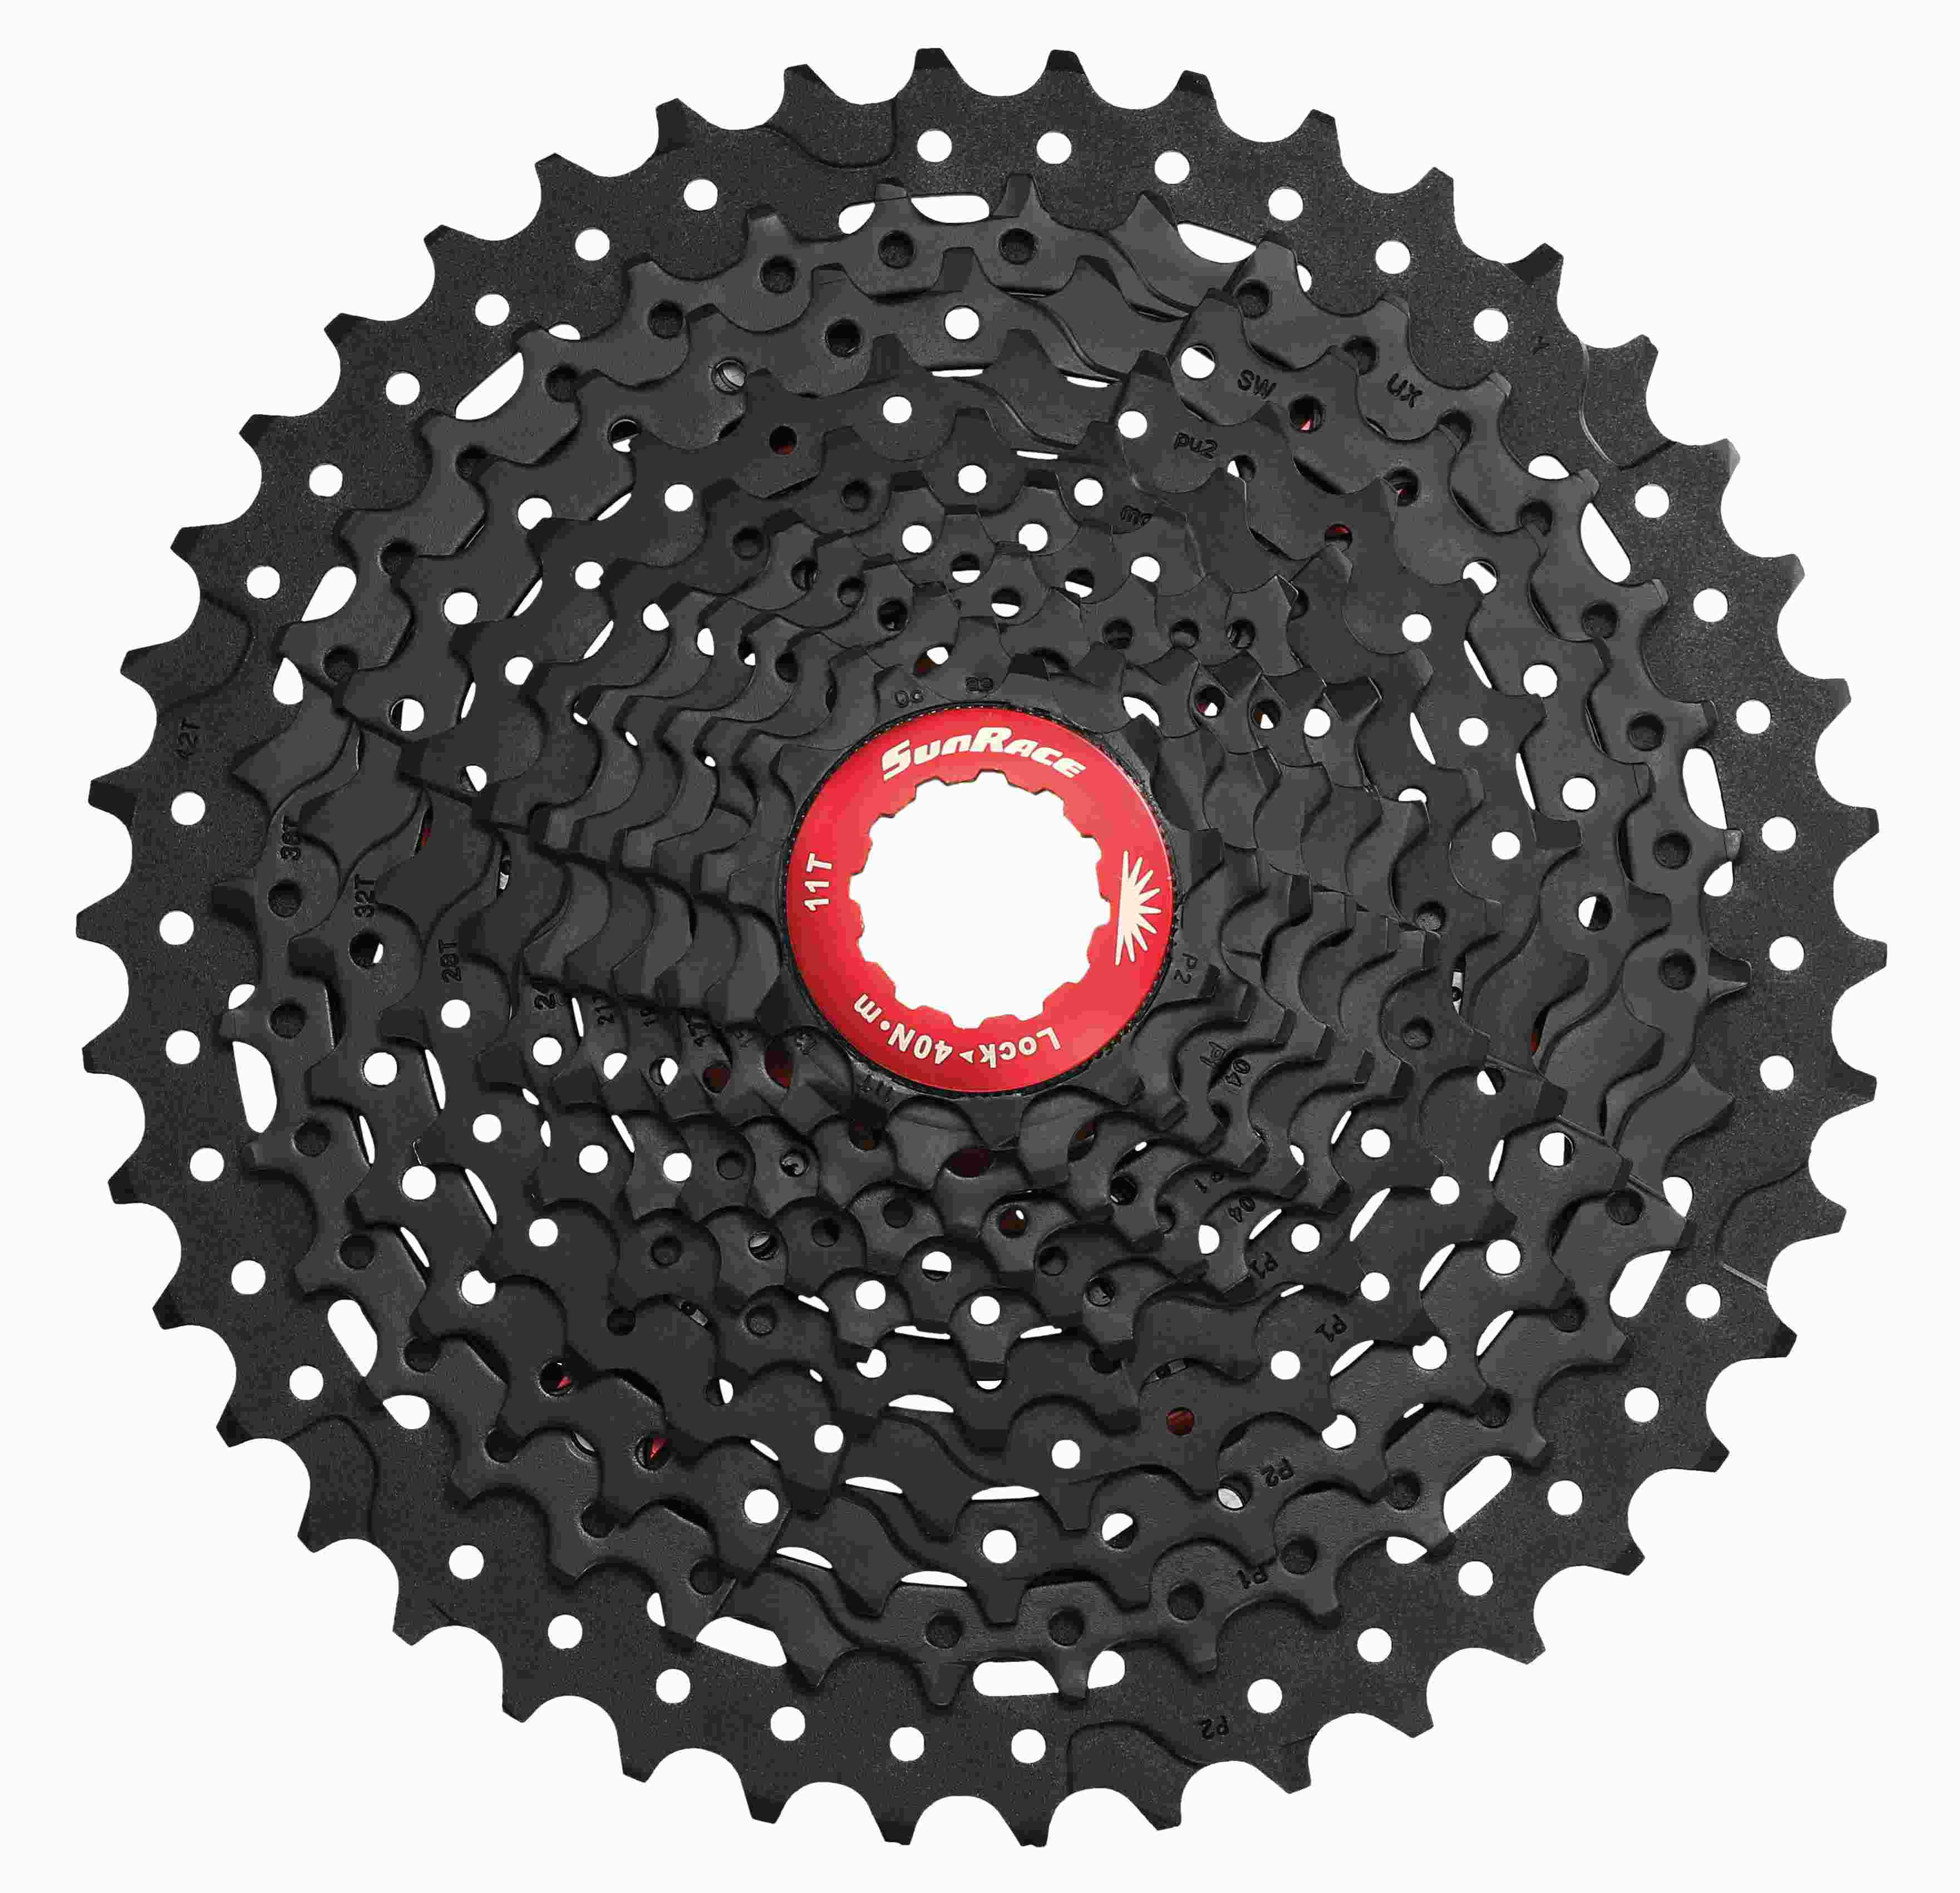 Cassete SUN RACE 12v 11-50 Black/Red CSMZ90